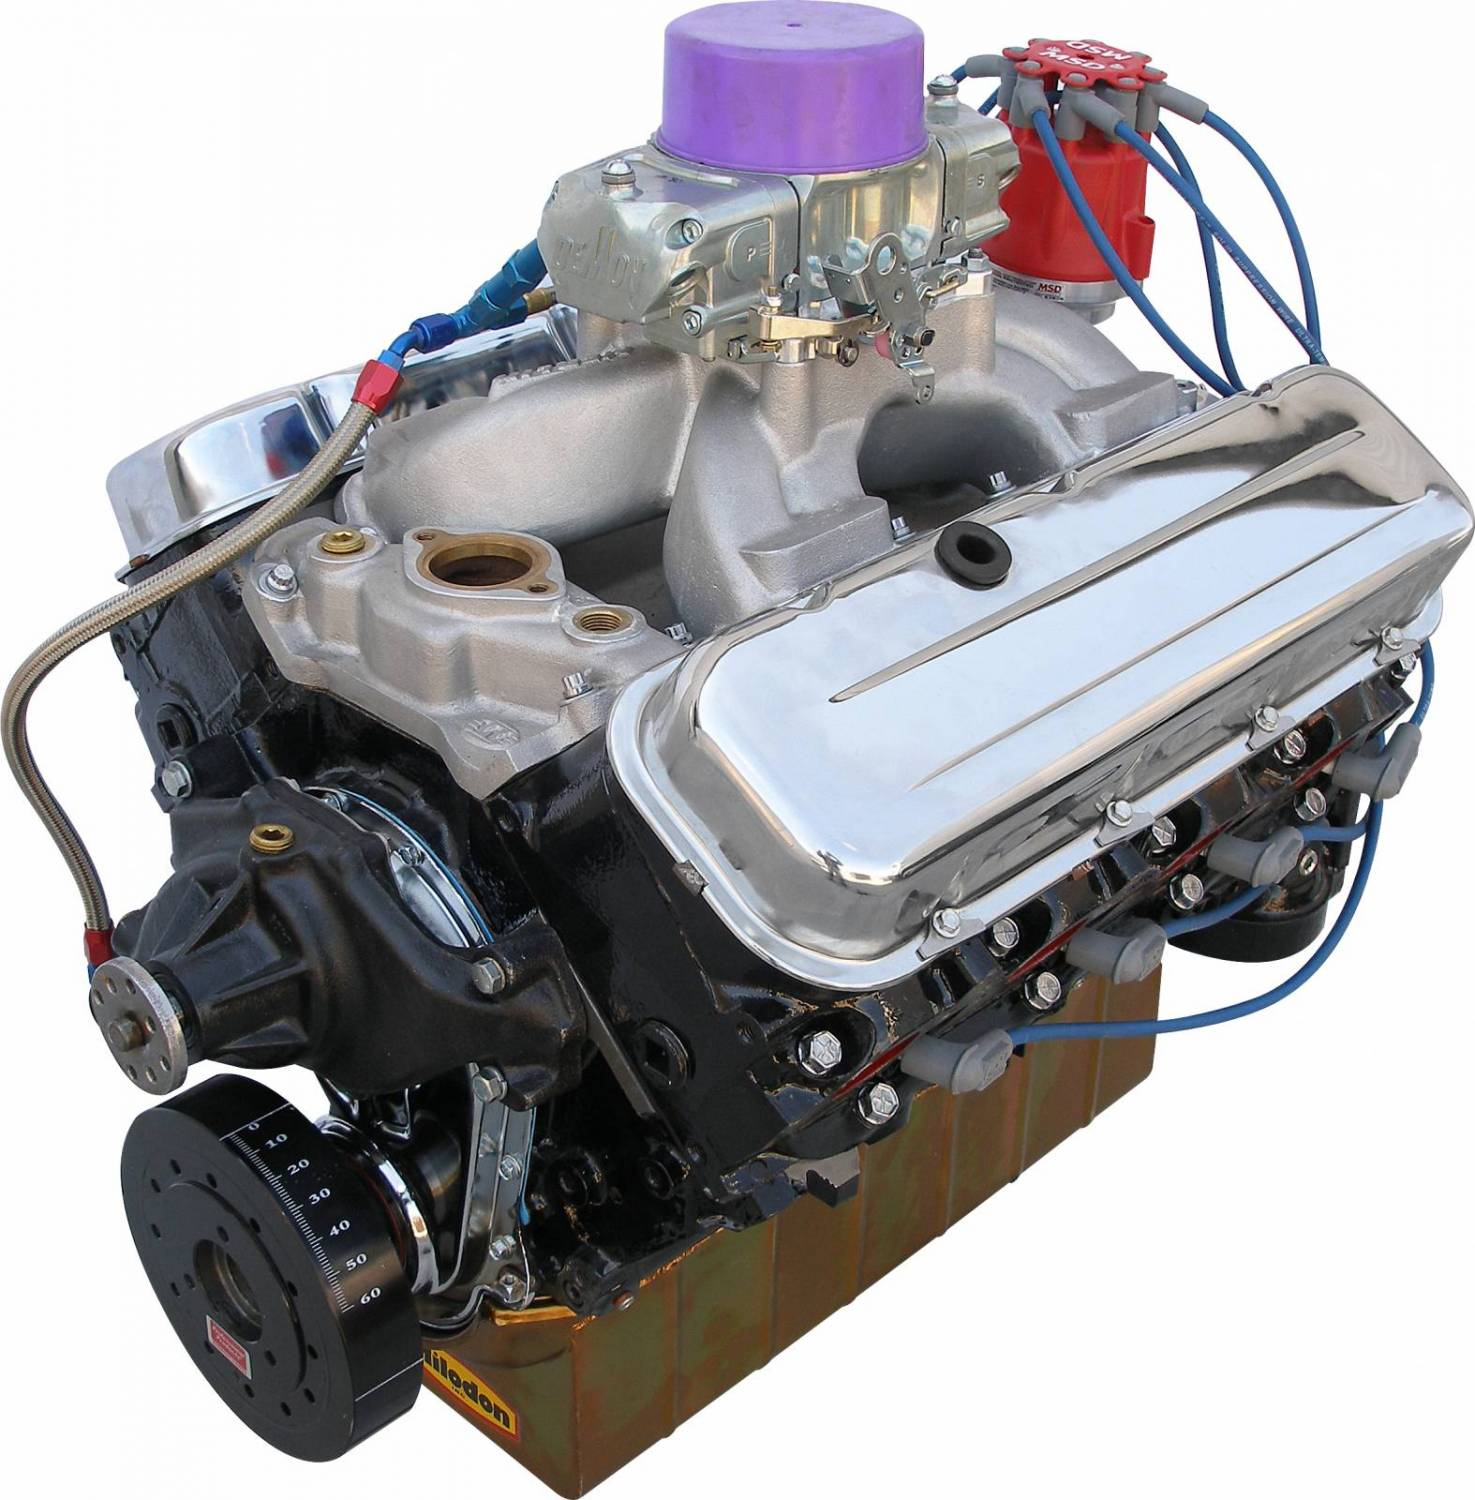 MBP4960CTC - BluePrint Engines 496CI 460HP Stroker Marine Crate